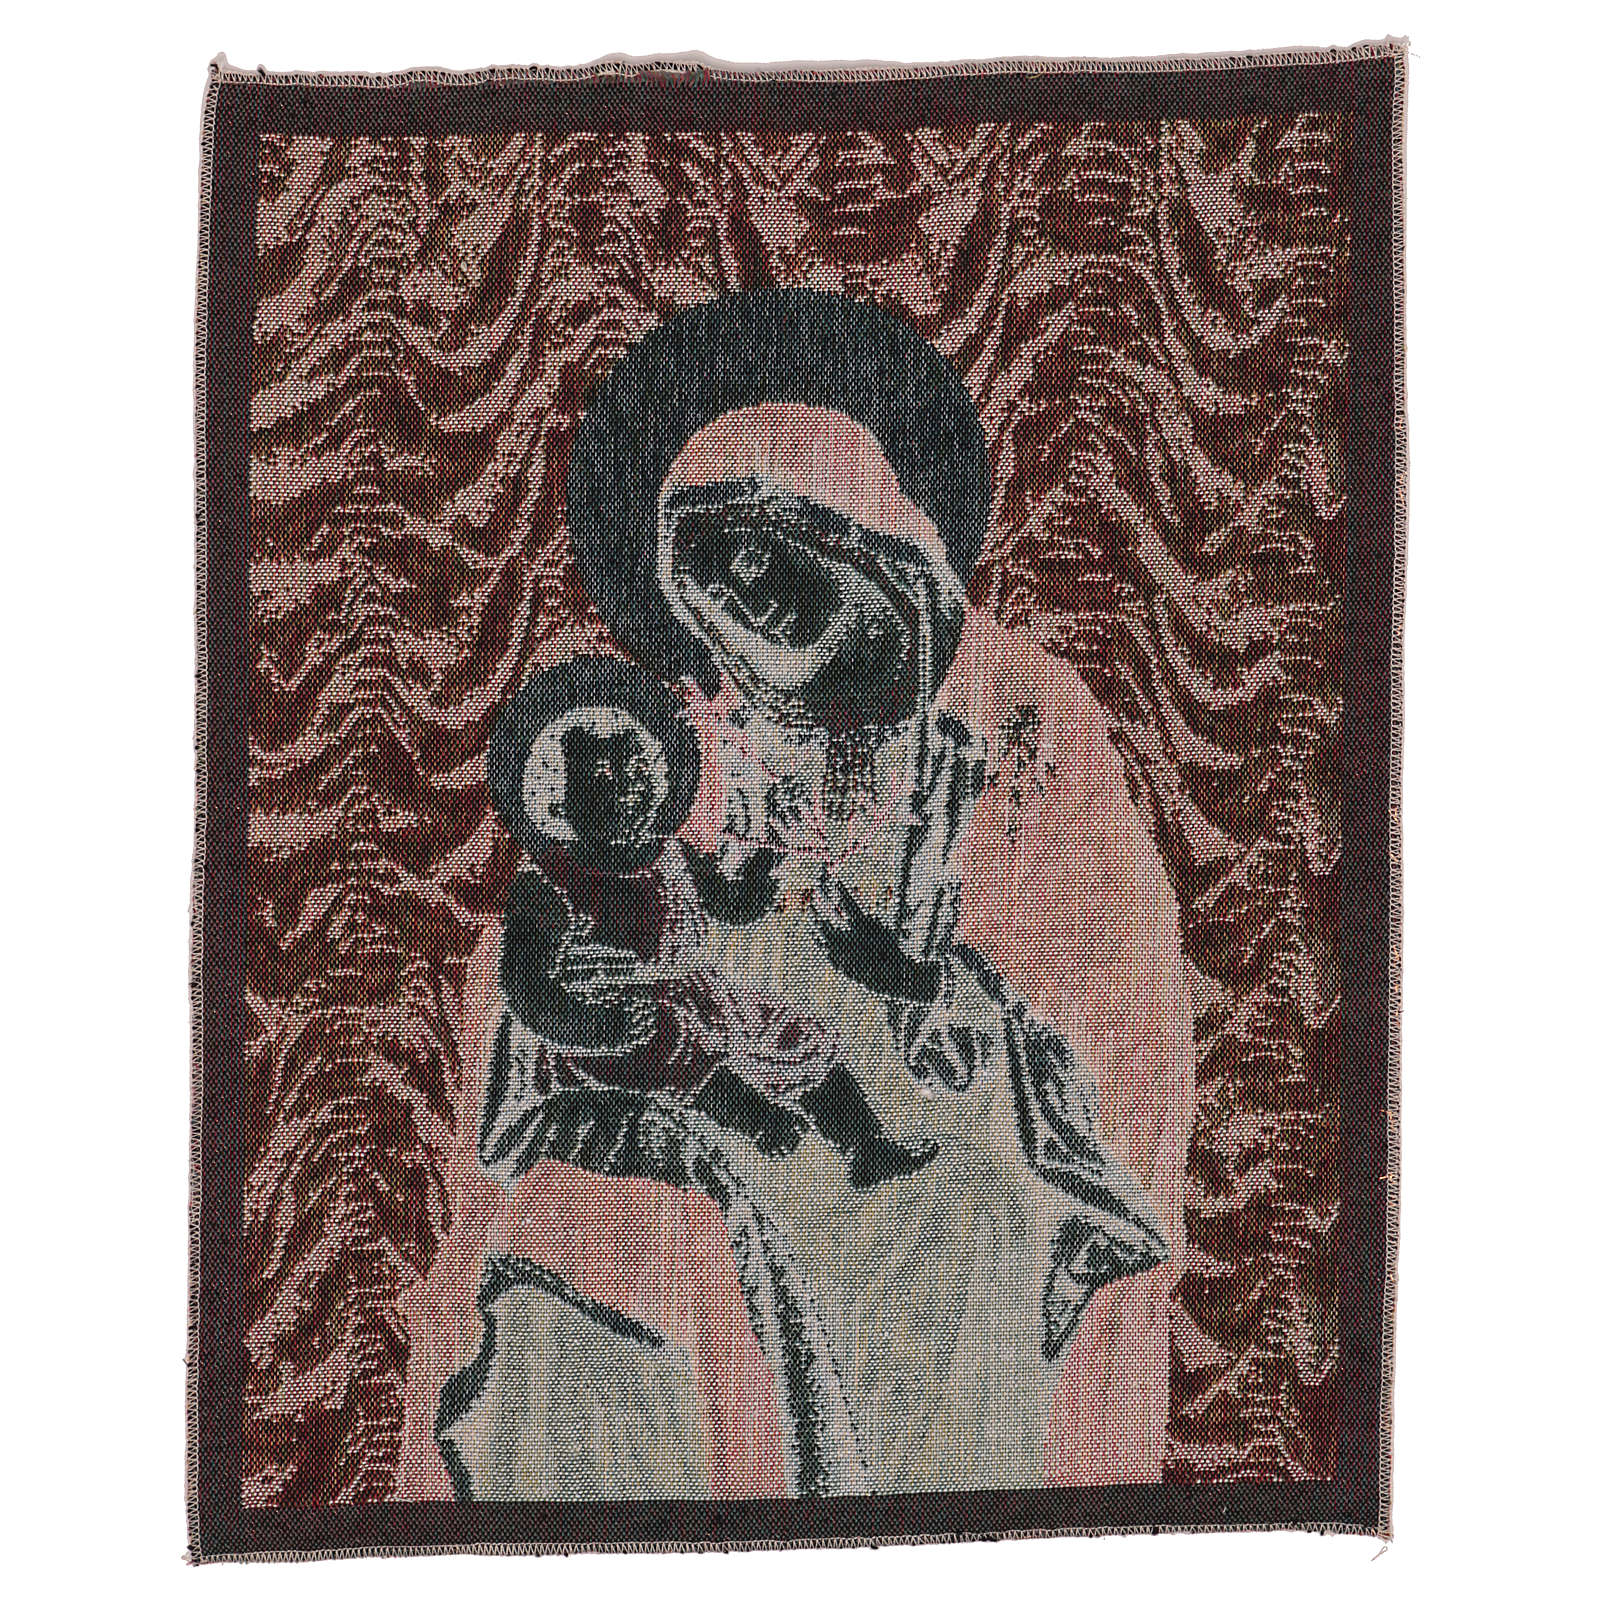 Our Lady of Peace tapestry 50x40 cm 3